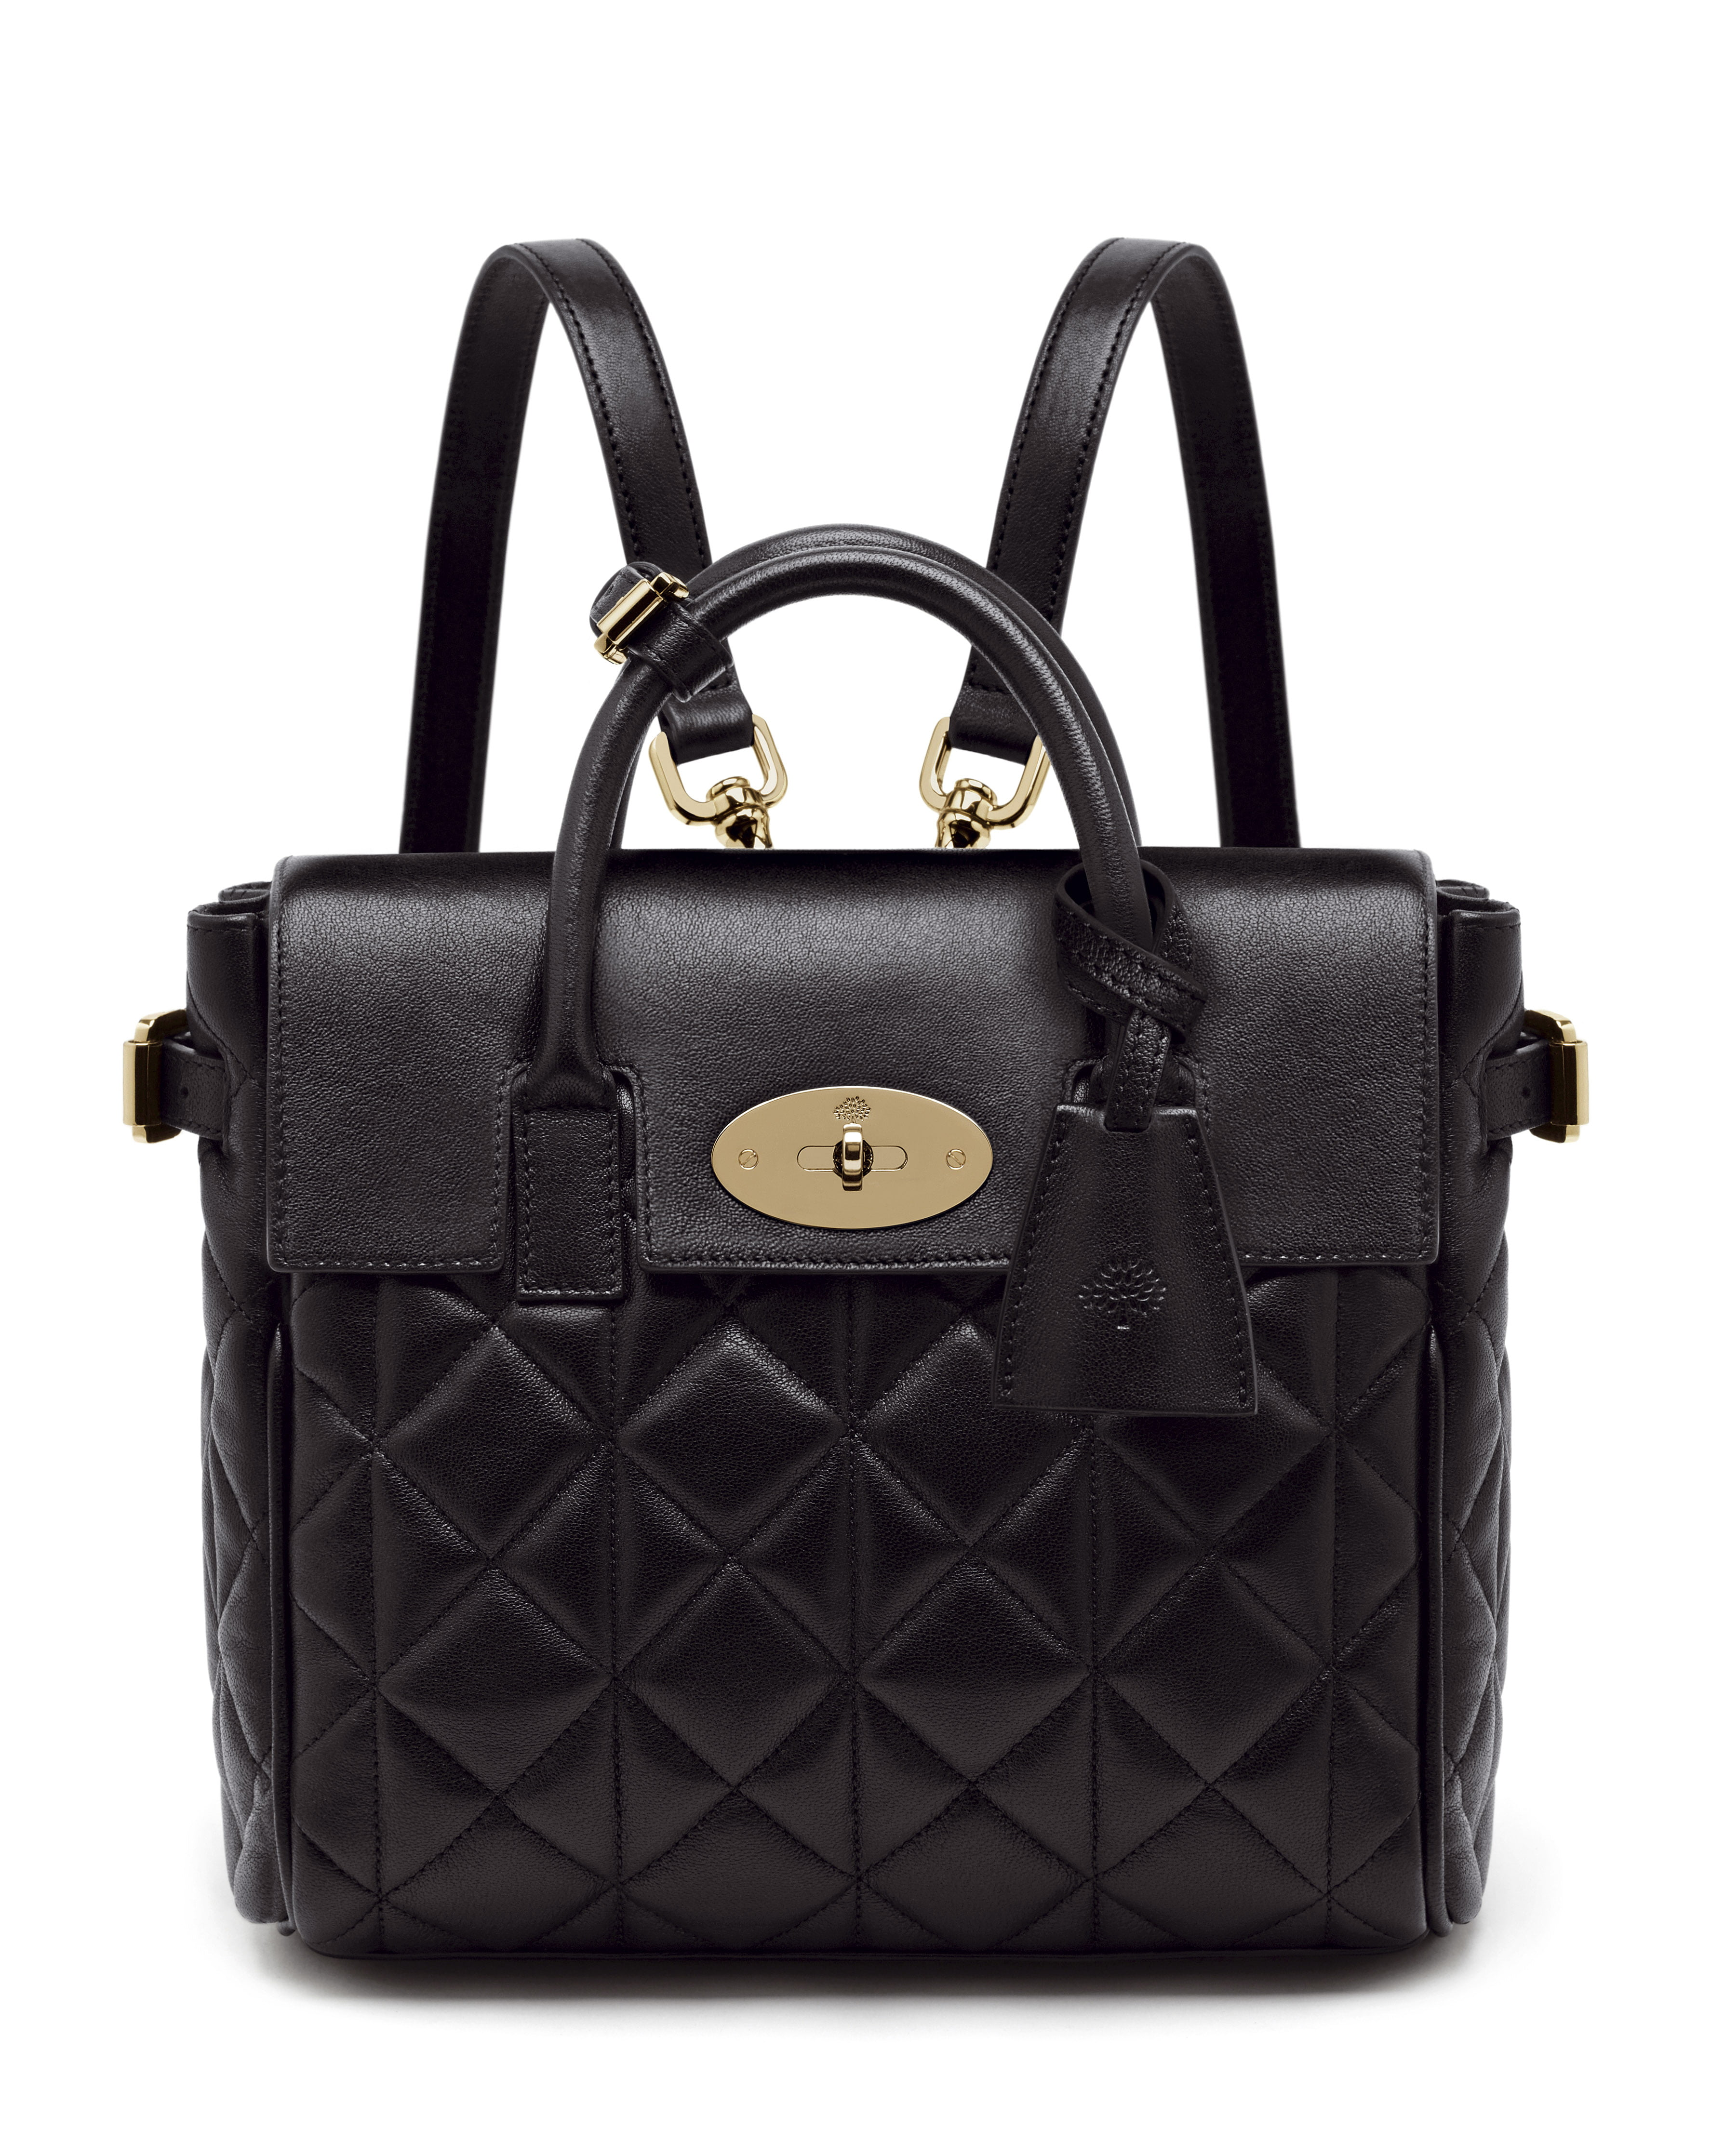 Mini Cara Delevingne Bag in Black Quilted Nappa